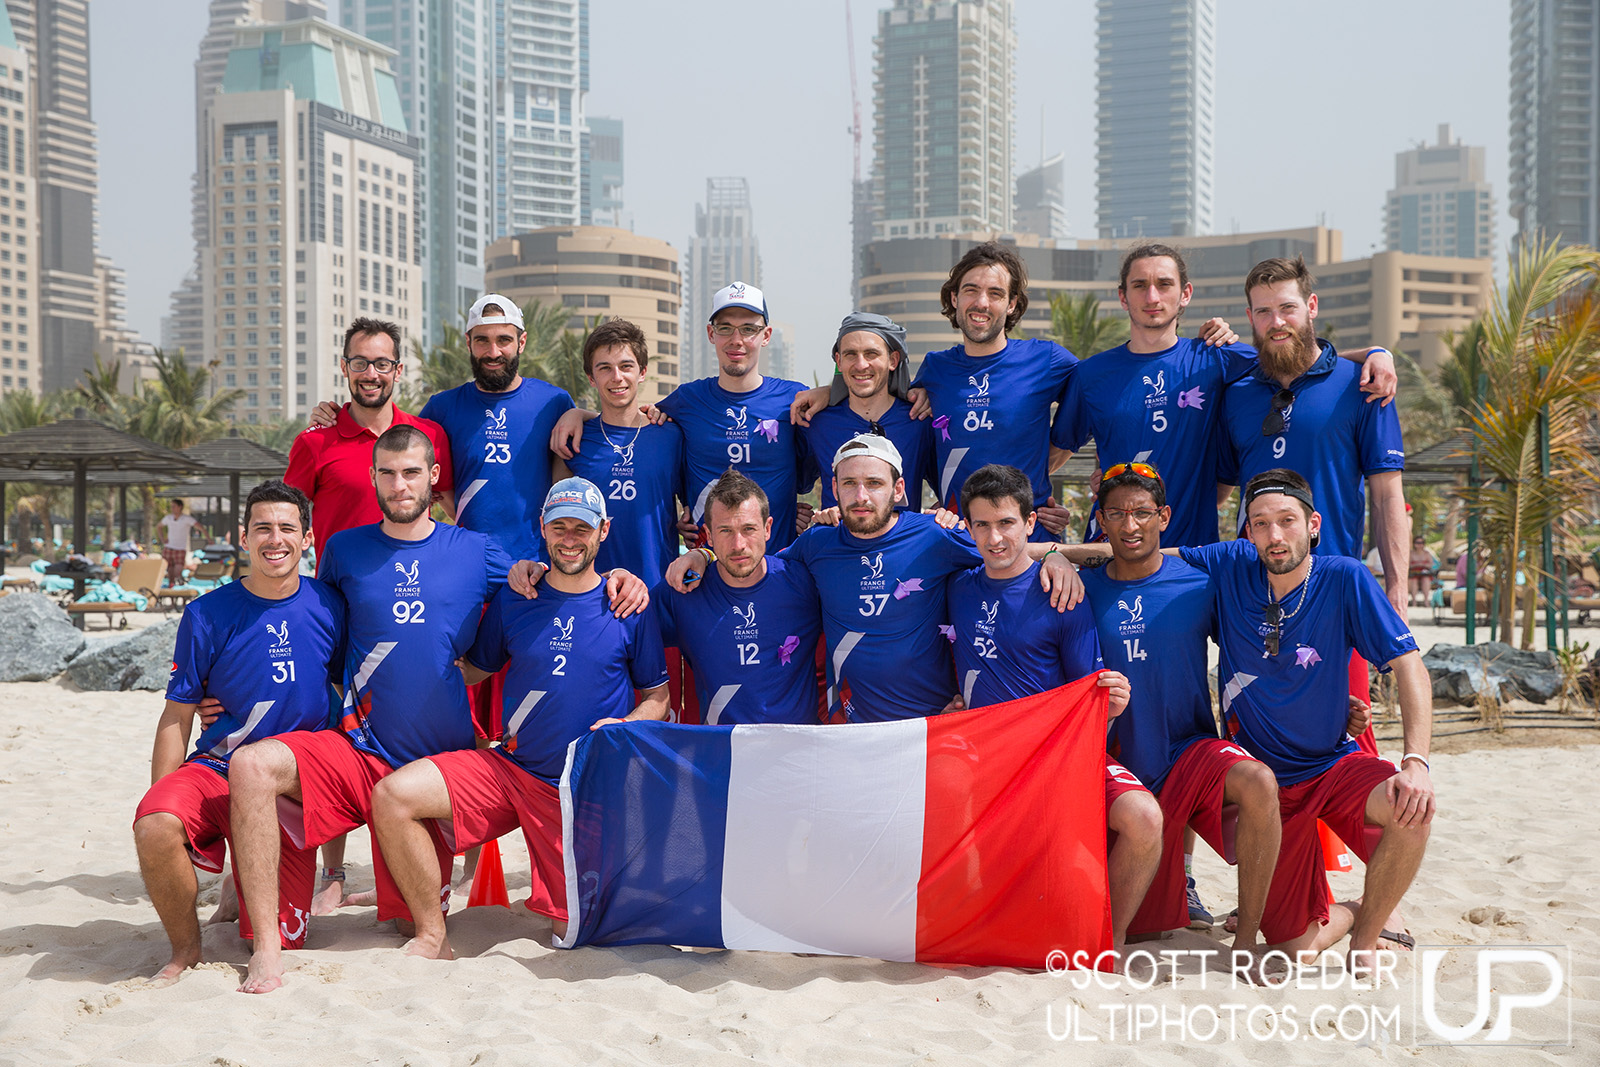 Team picture of France Open